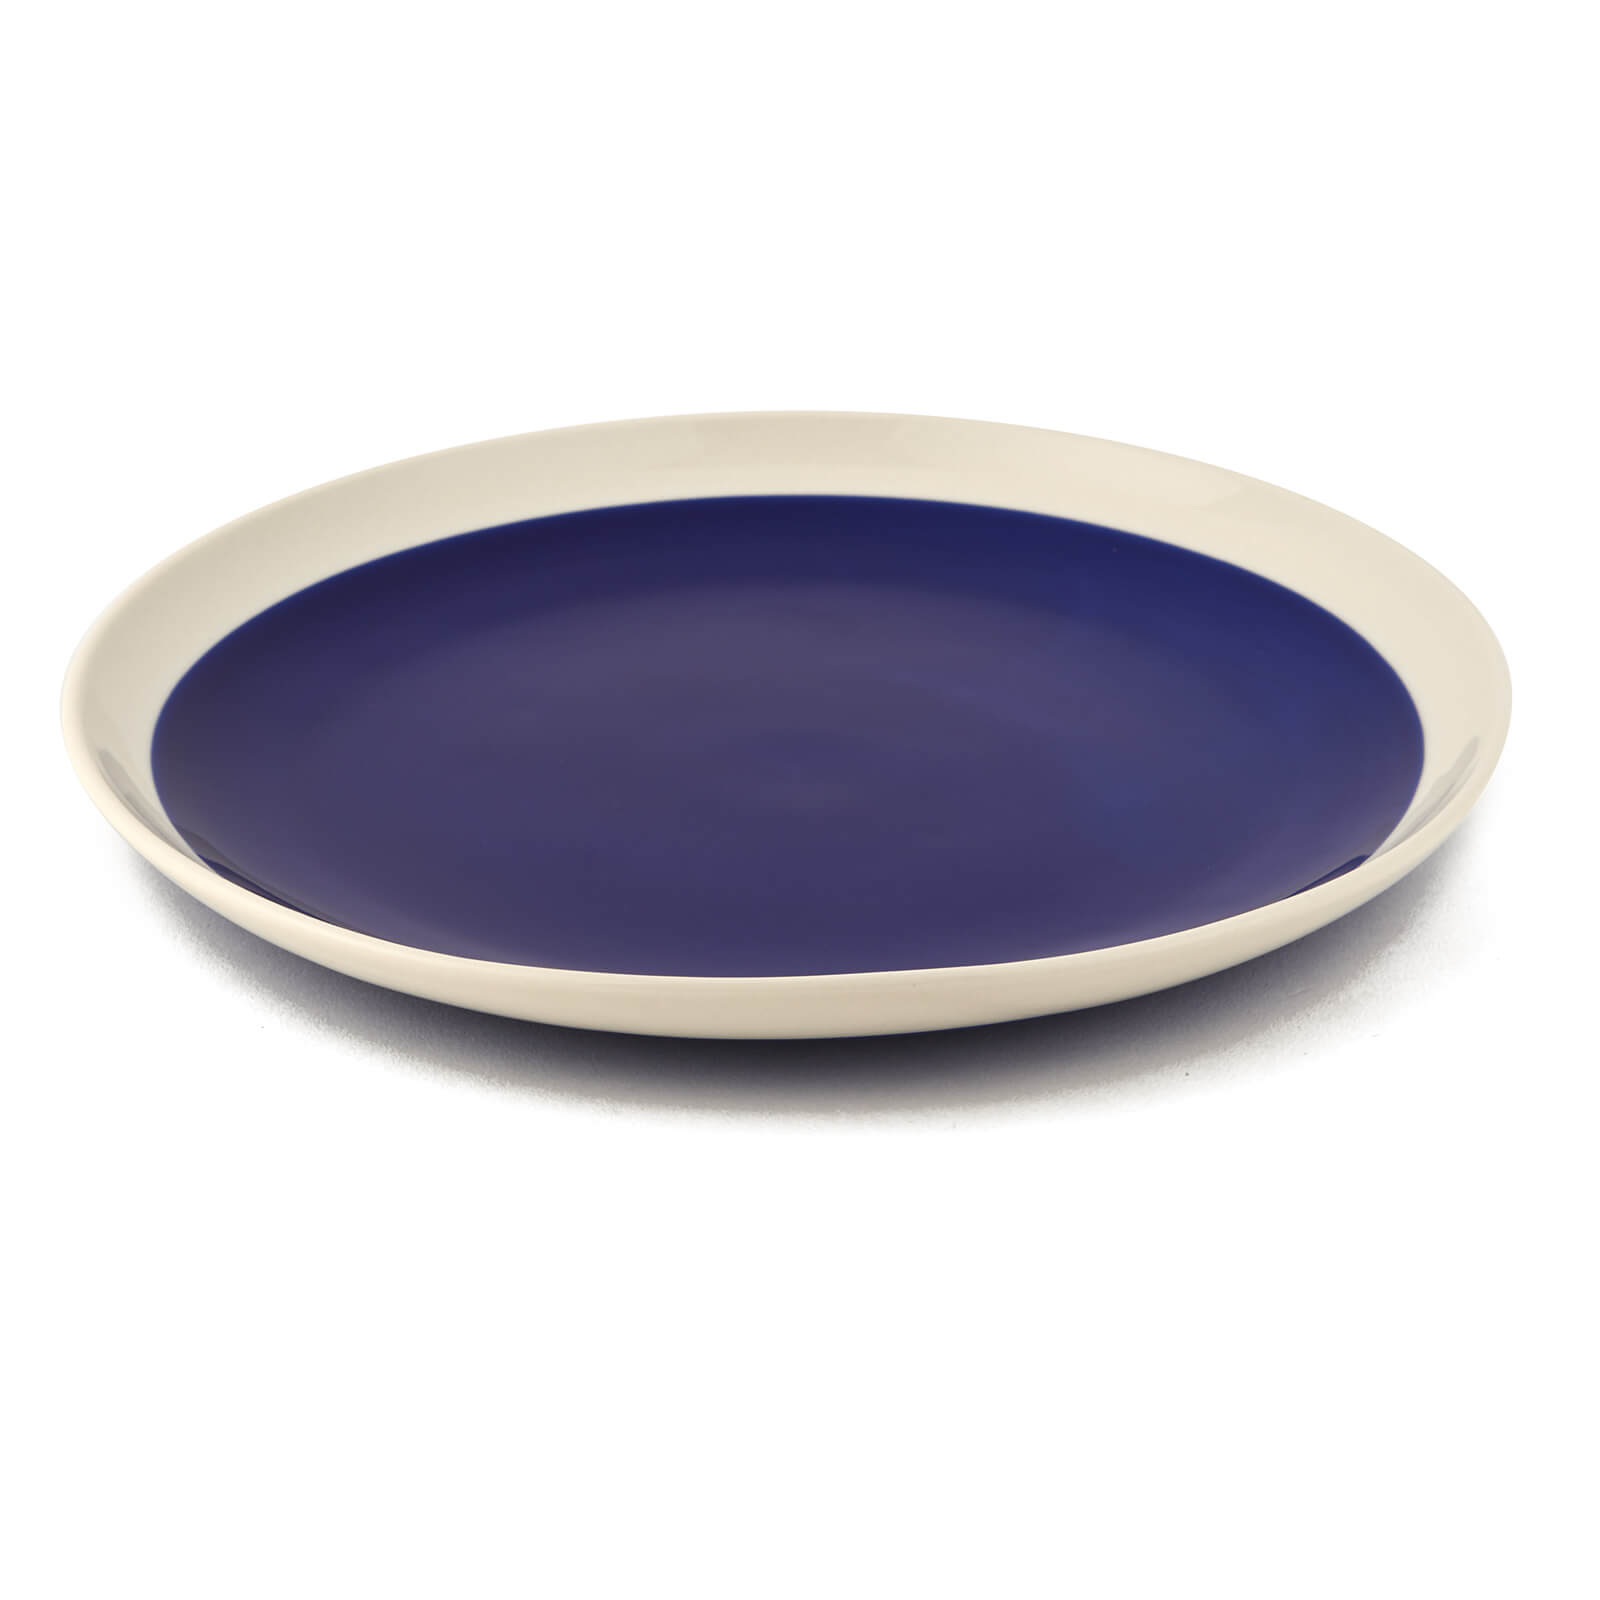 Nkuku Datia Dinner Plate - Navy